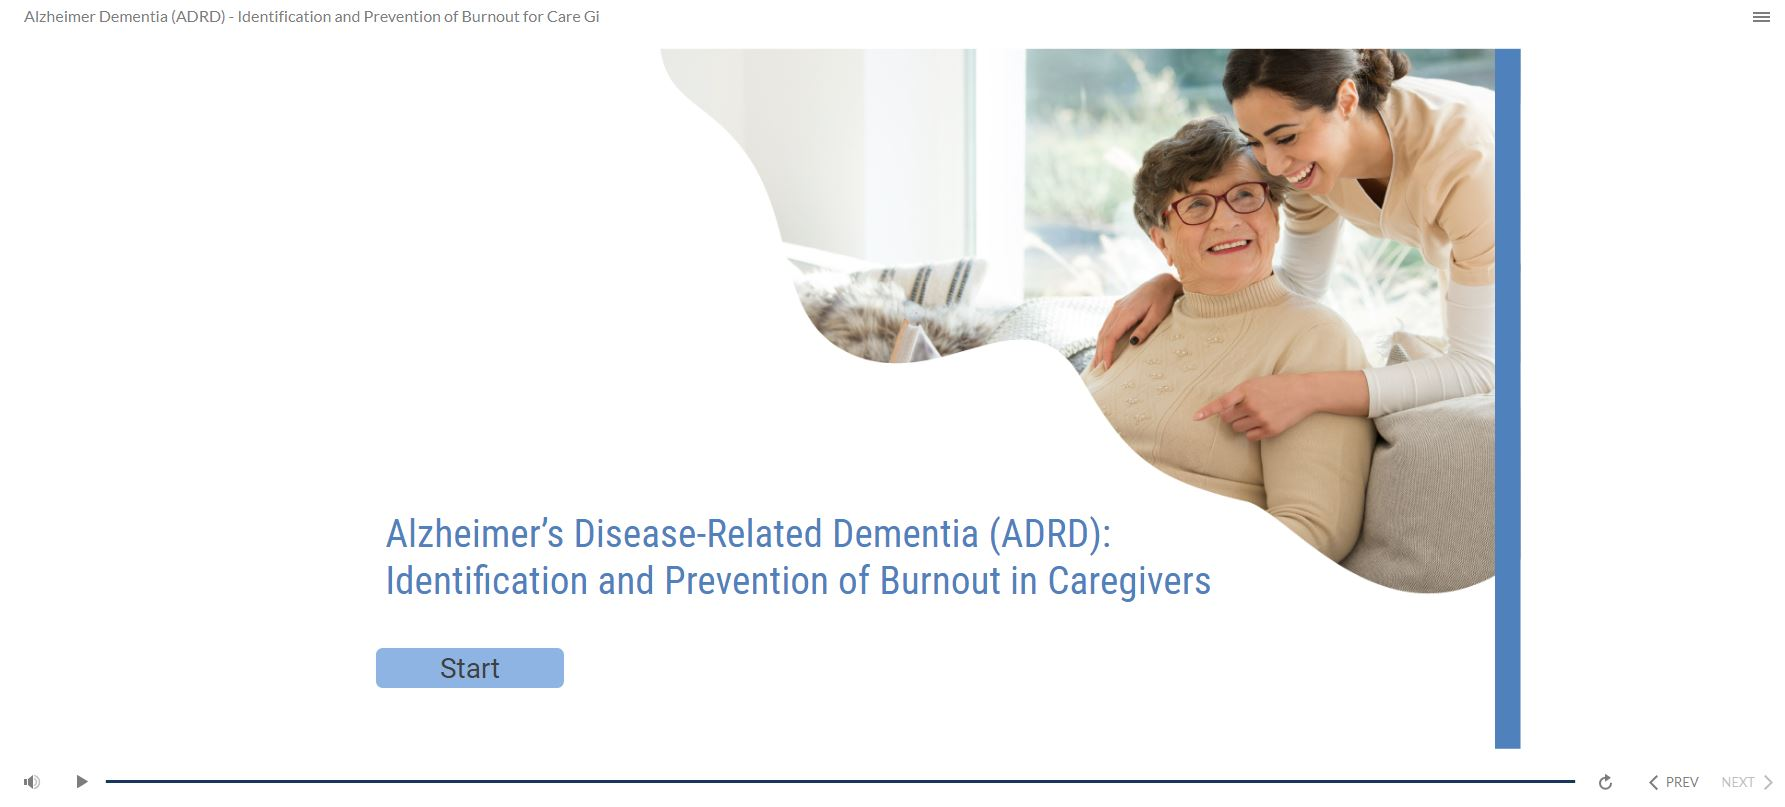 Alzheimer's Dementia (ADRD) – Identification and Prevention of Burnout for Care Givers